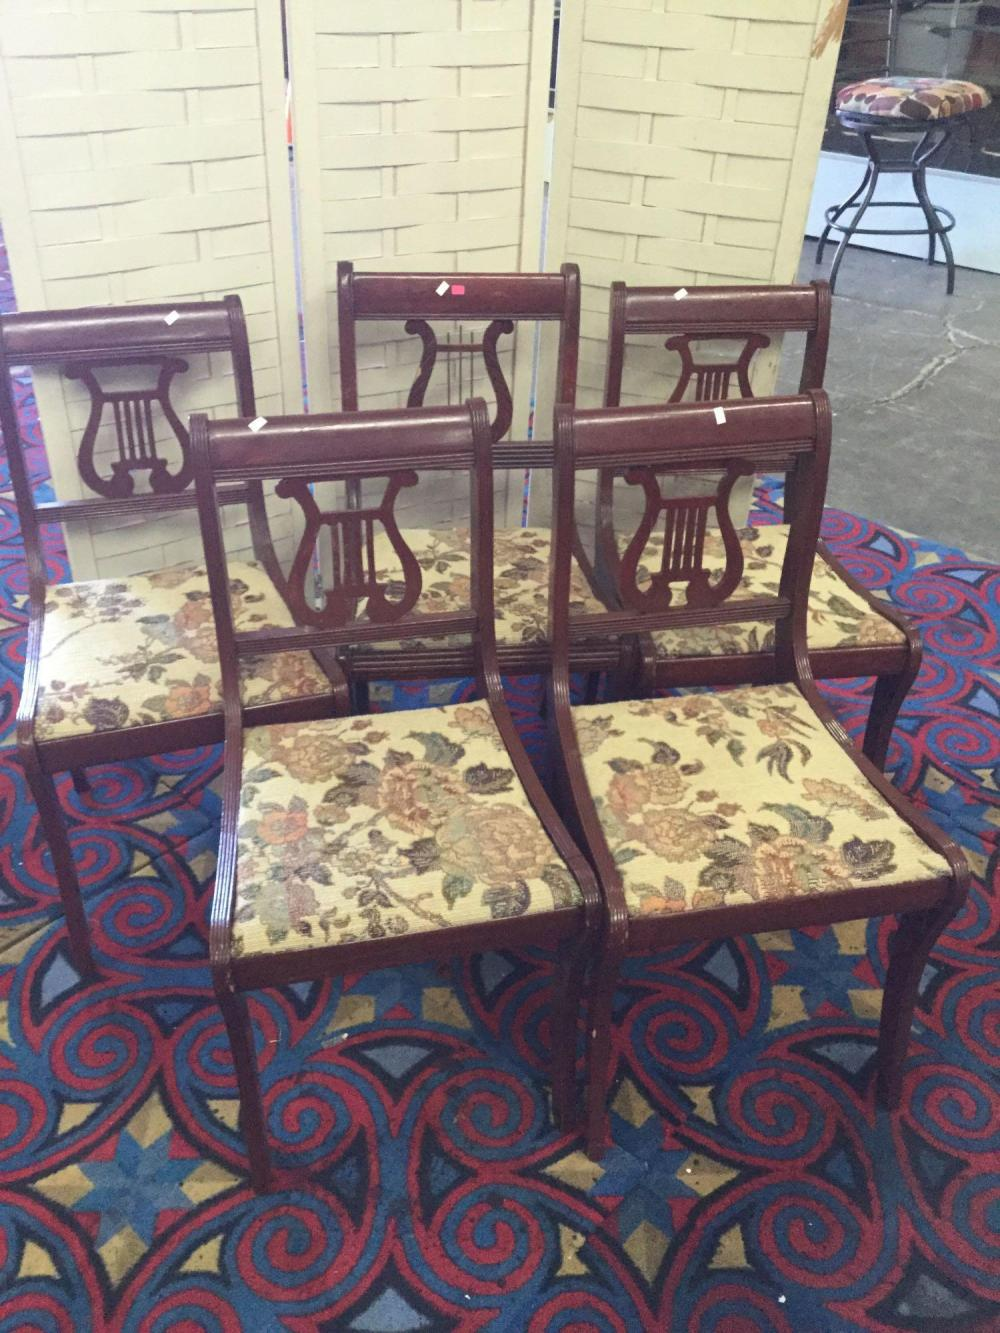 5 antique mahogany lyre back chairs with floral stitched seats - deco period